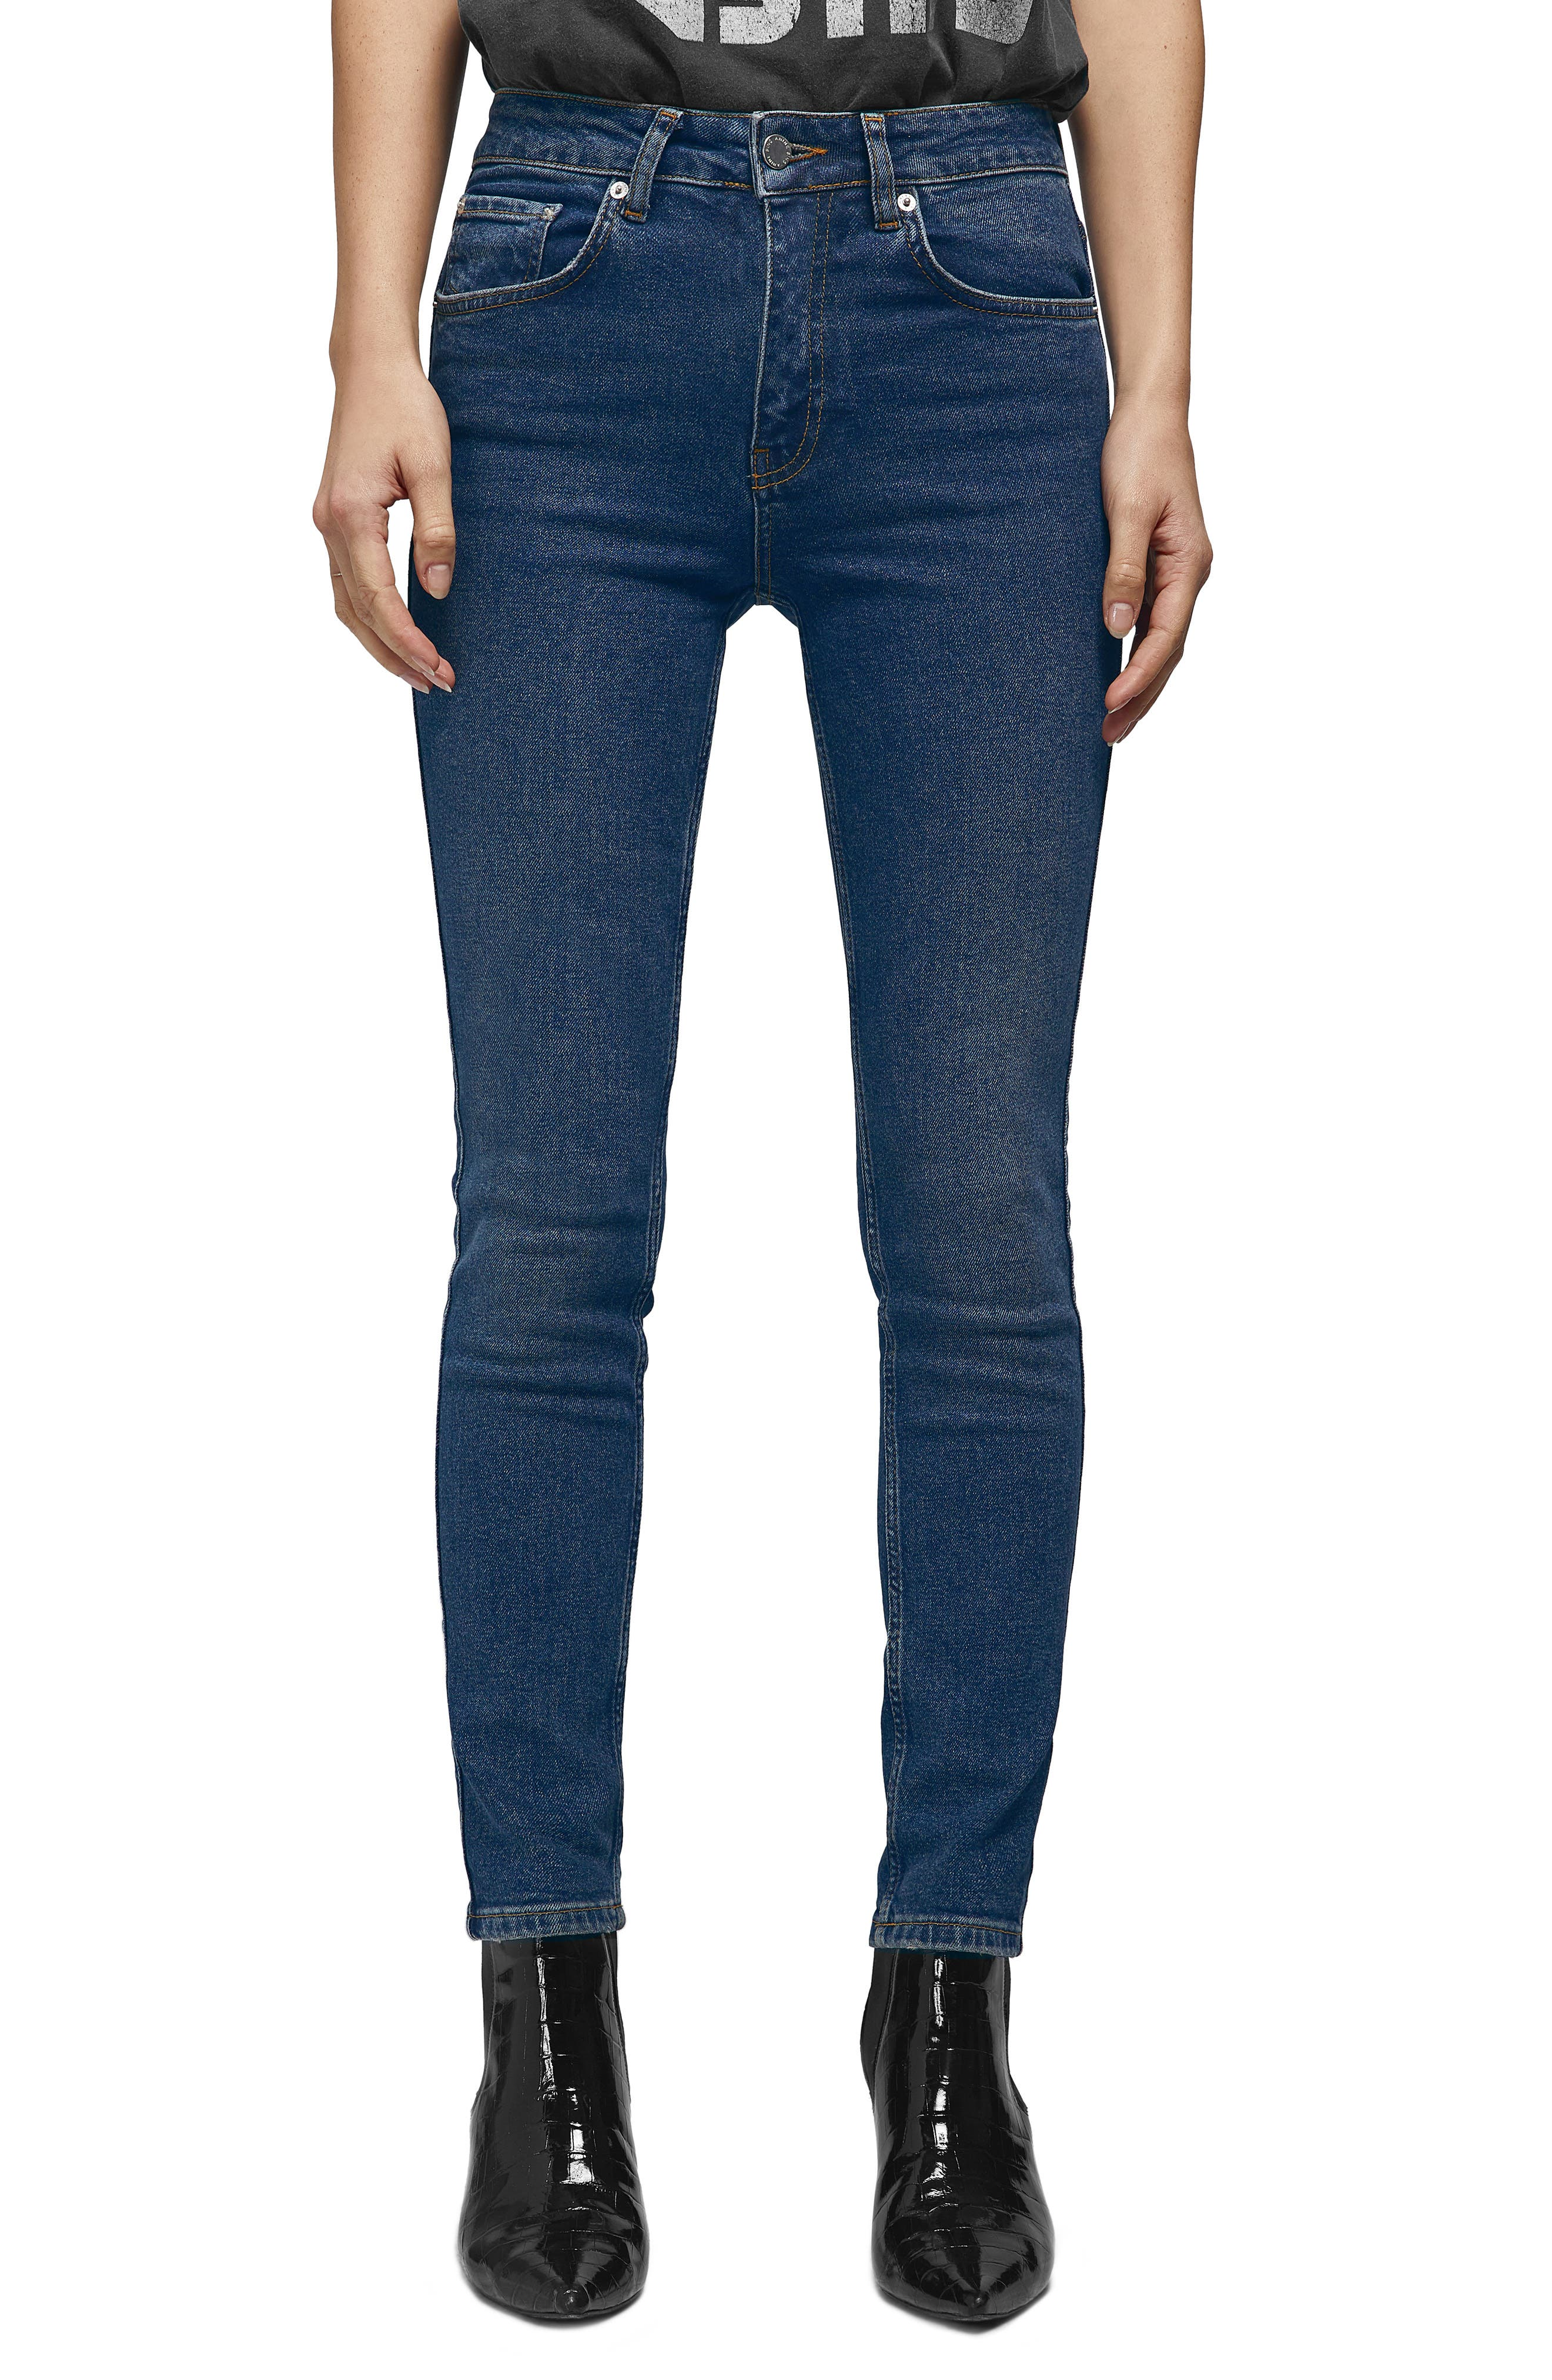 ANINE BING High Waist Skinny Jeans, Main, color, NAVY